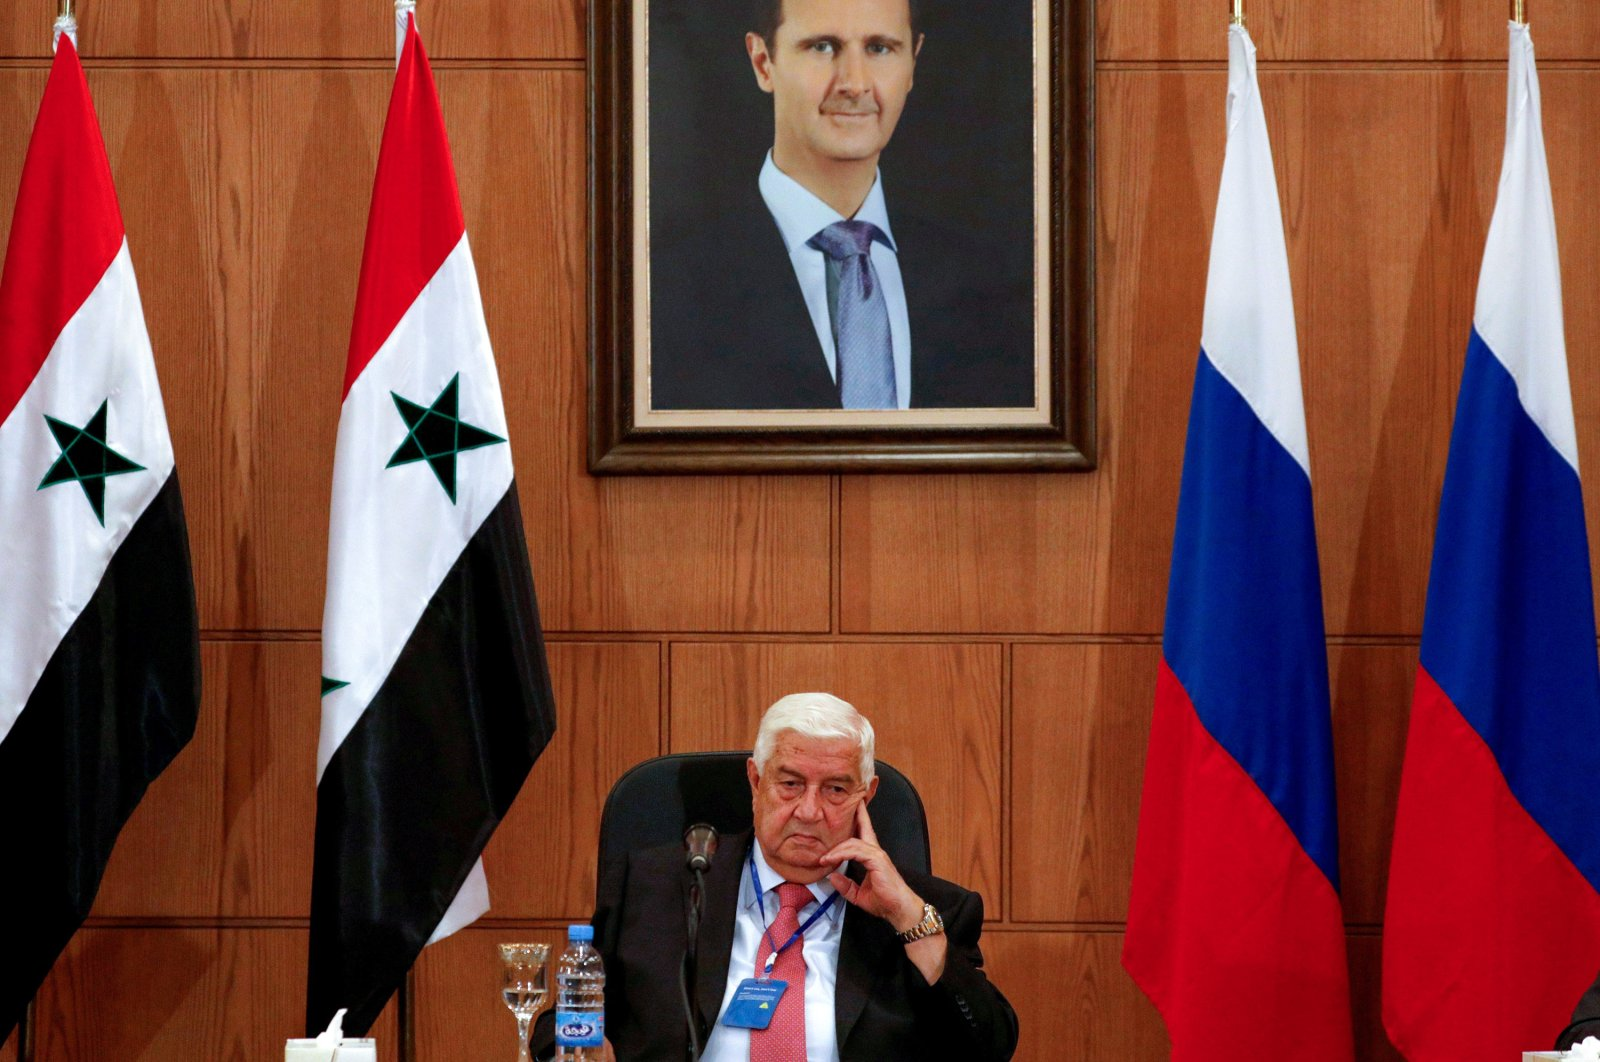 Syria's Foreign Minister Walid al-Moalem attends a press conference with Russian Deputy Prime Minister Yuri Borisov and Foreign Minister Sergei Lavrov in Damascus, Syria, Sept. 7, 2020. (Reuters Photo)